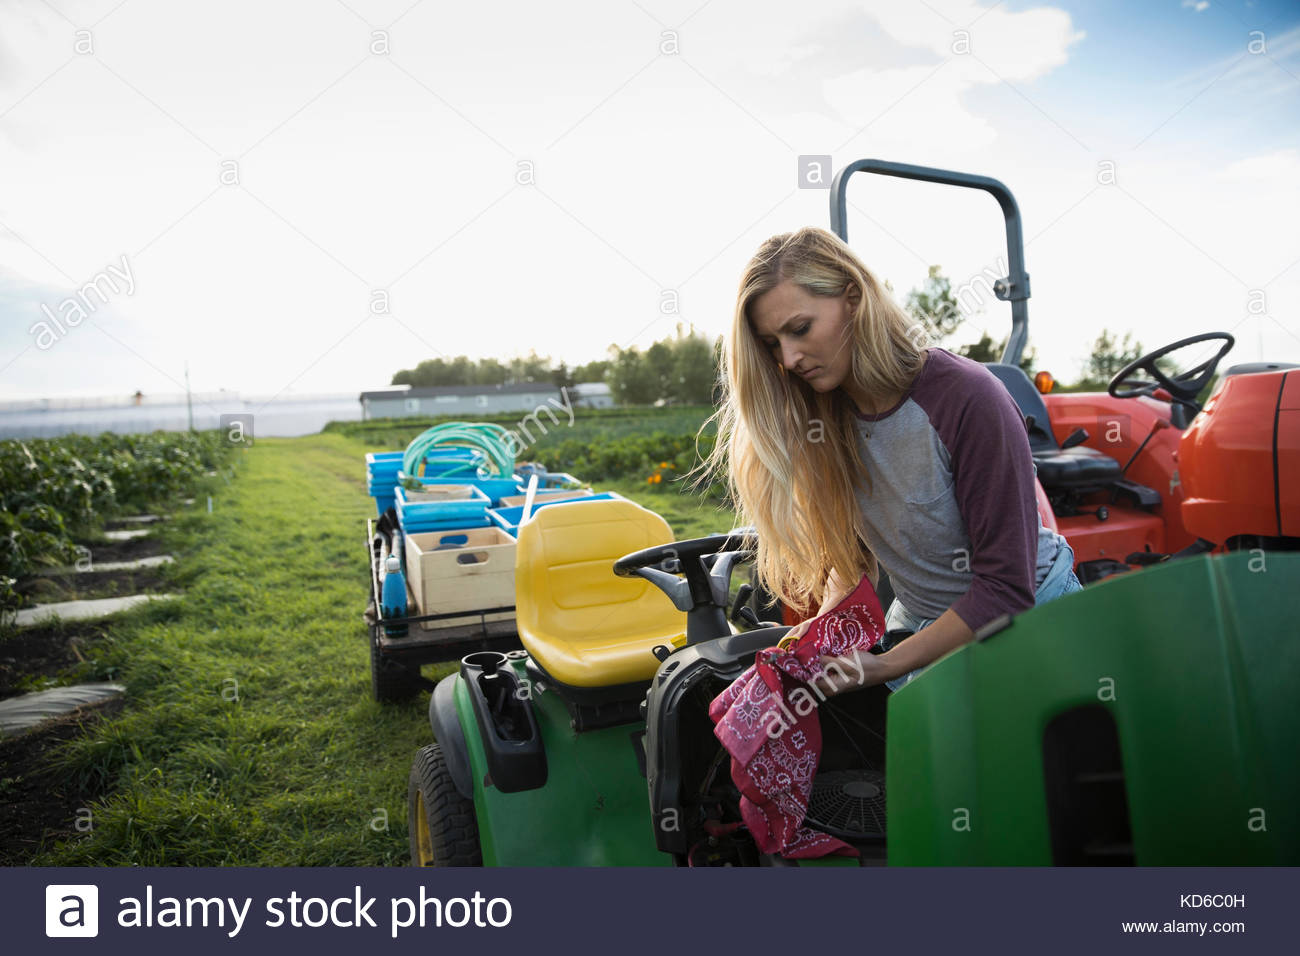 Female farmer with handkerchief on tractor on farm - Stock Image